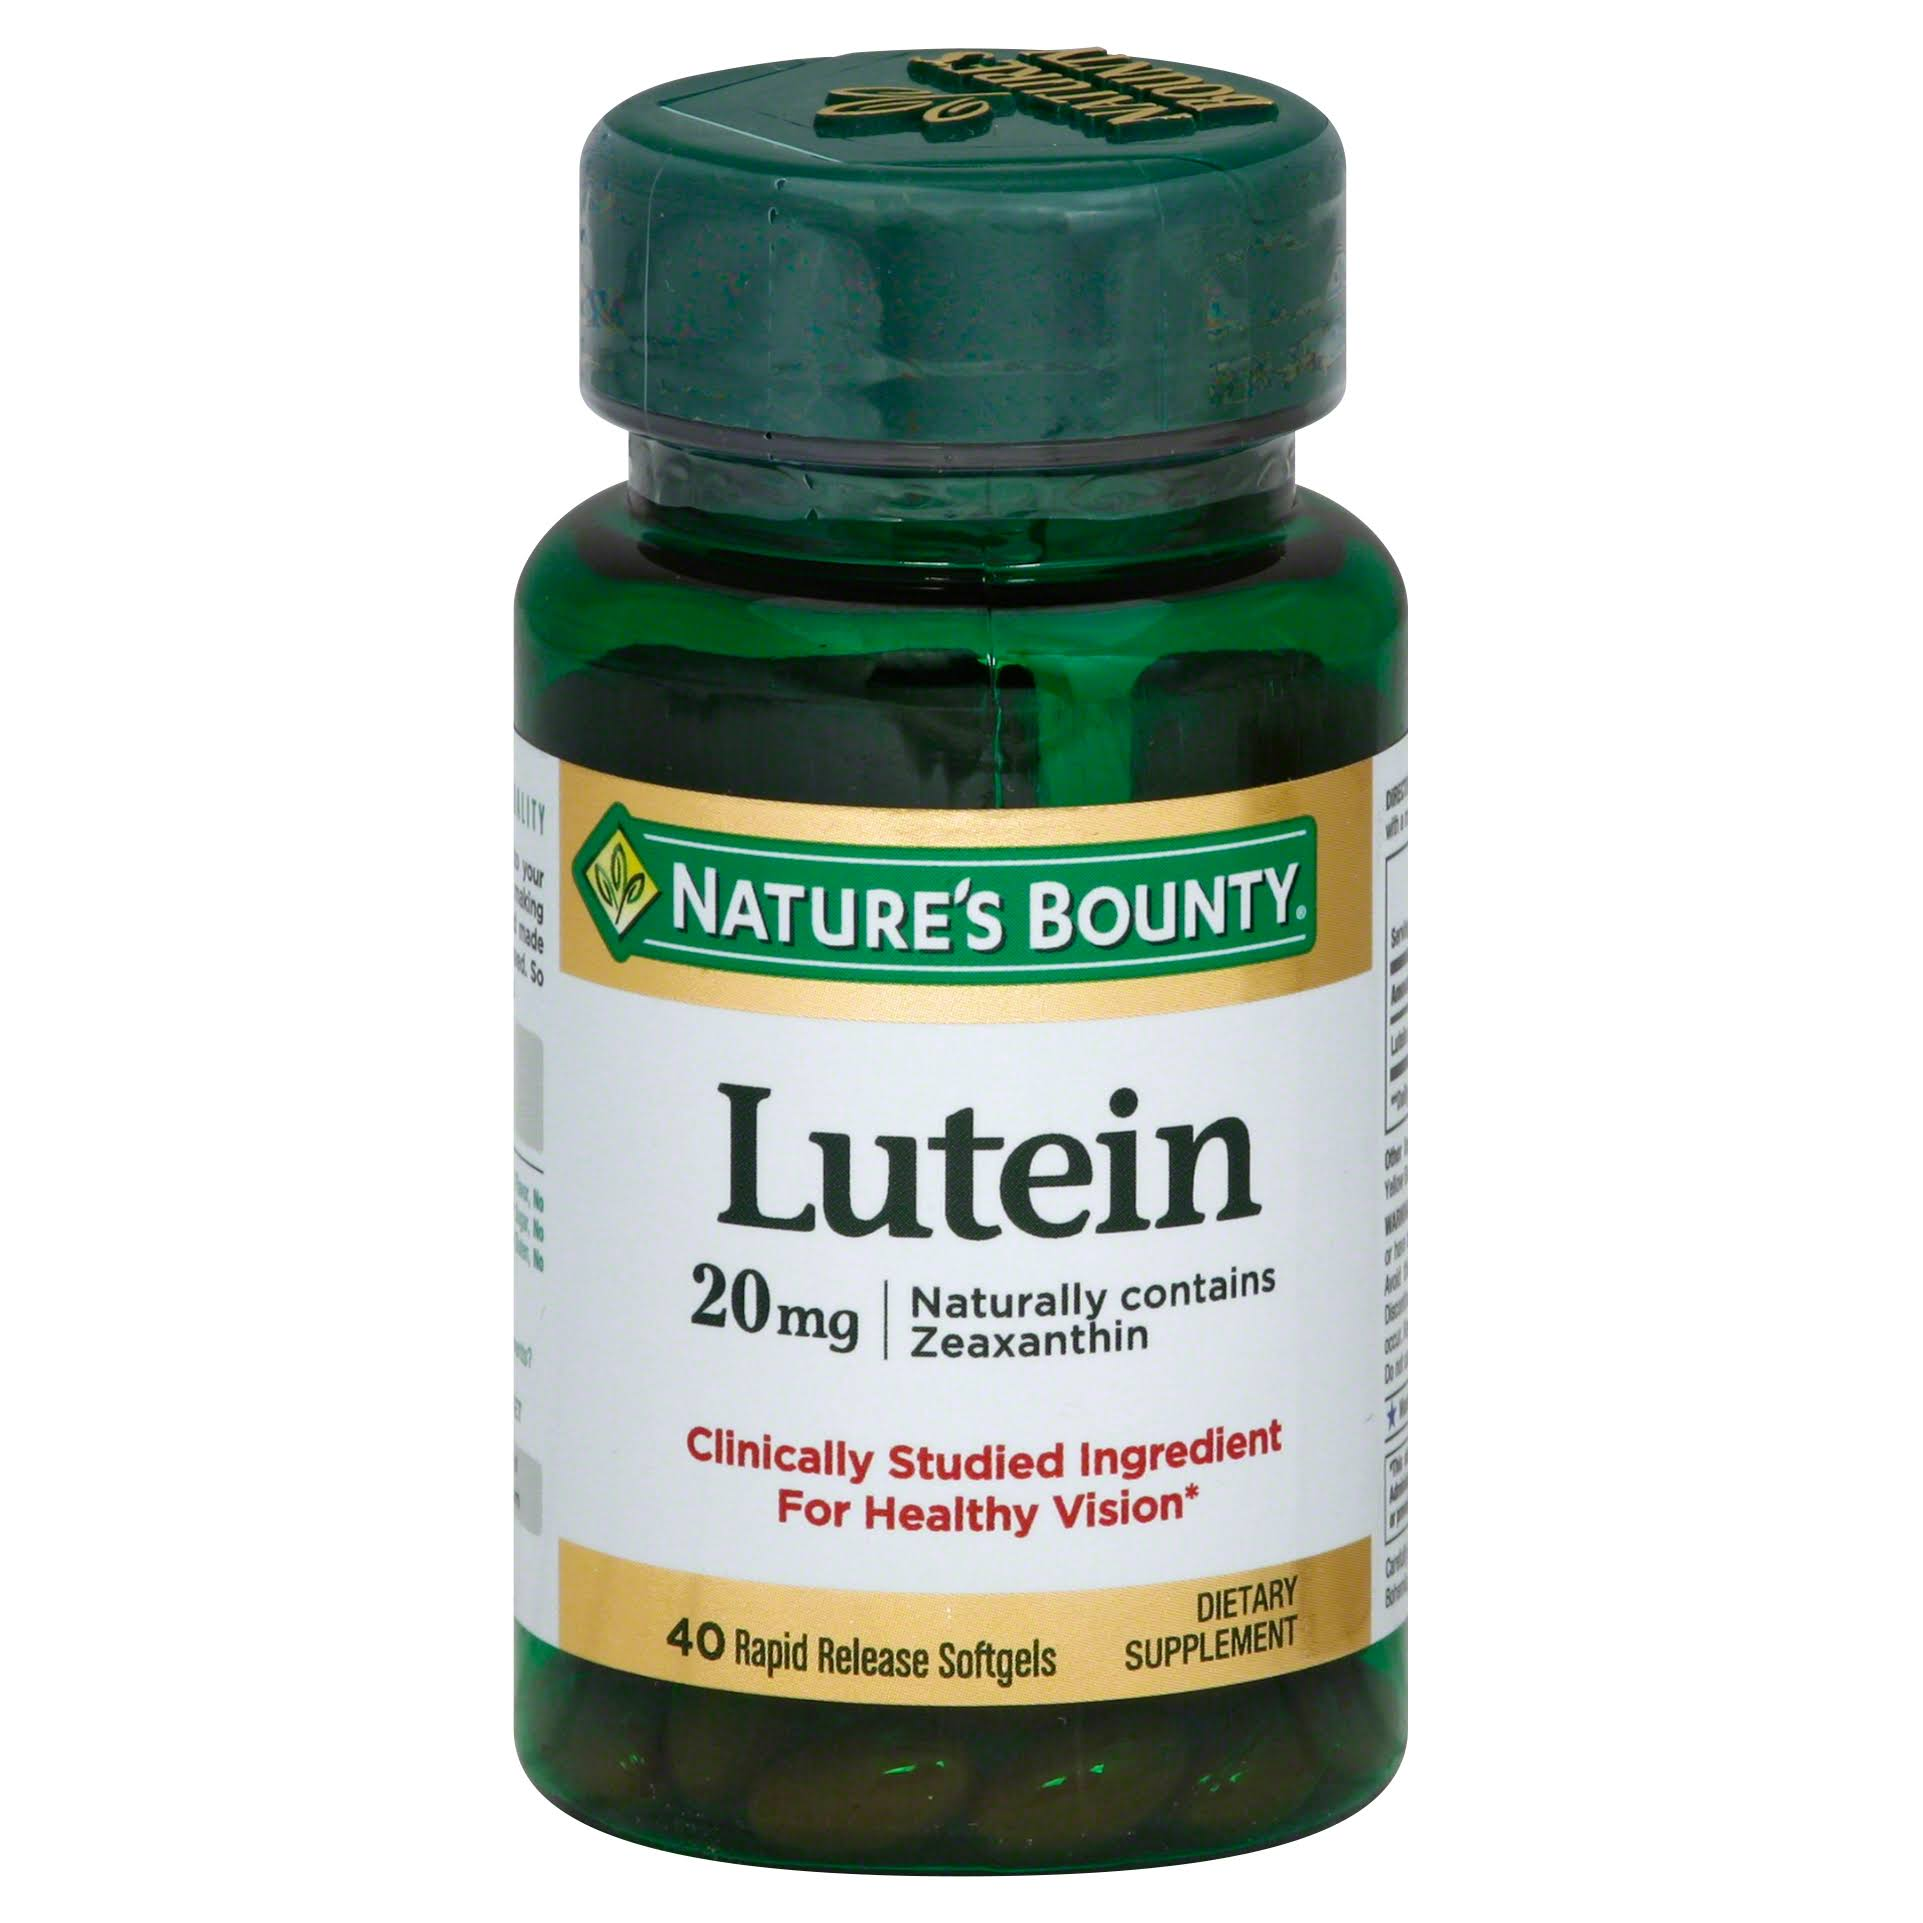 Nature's Bounty Lutein Supplement - 40 Softgels